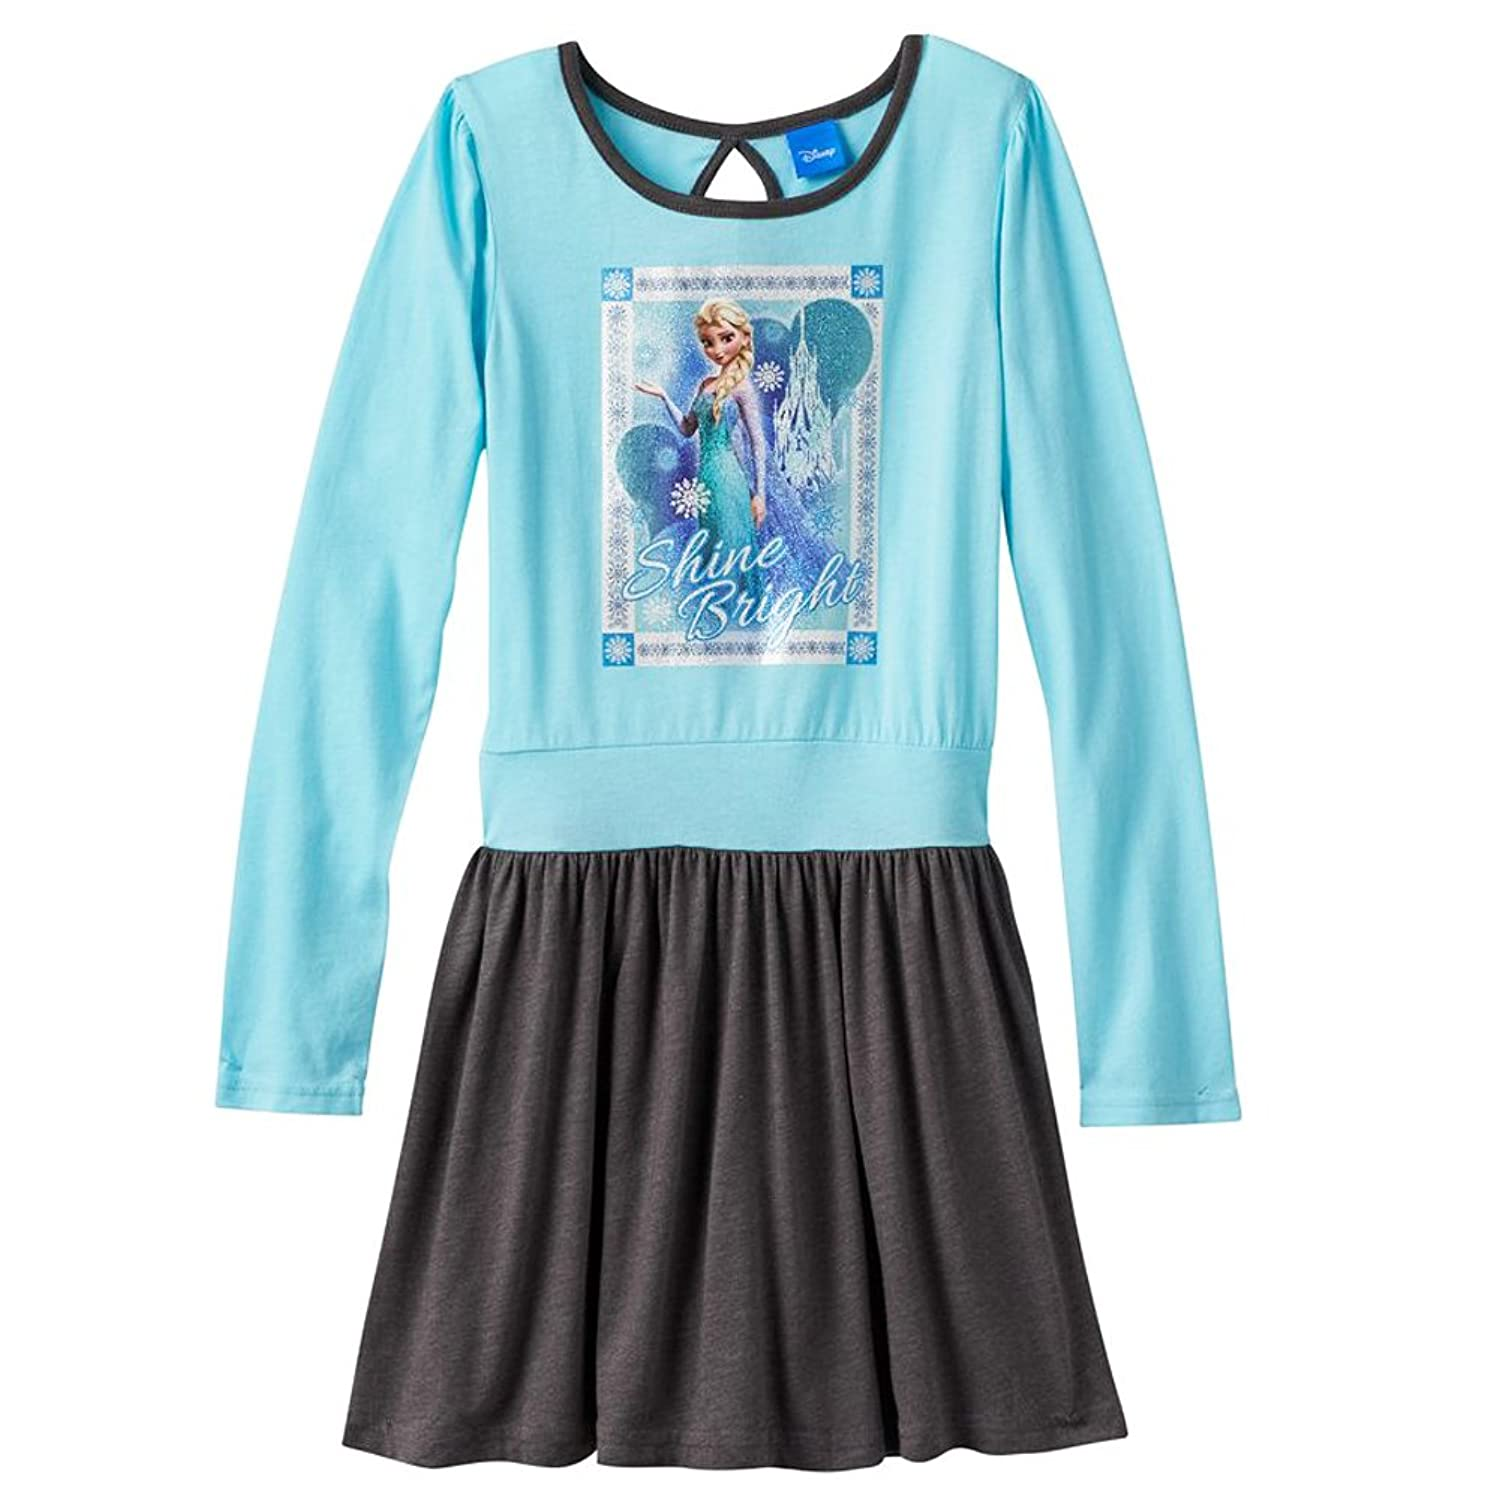 Disney Frozen Elsa Long Sleeve Dress Set Little Girls Small 4-6